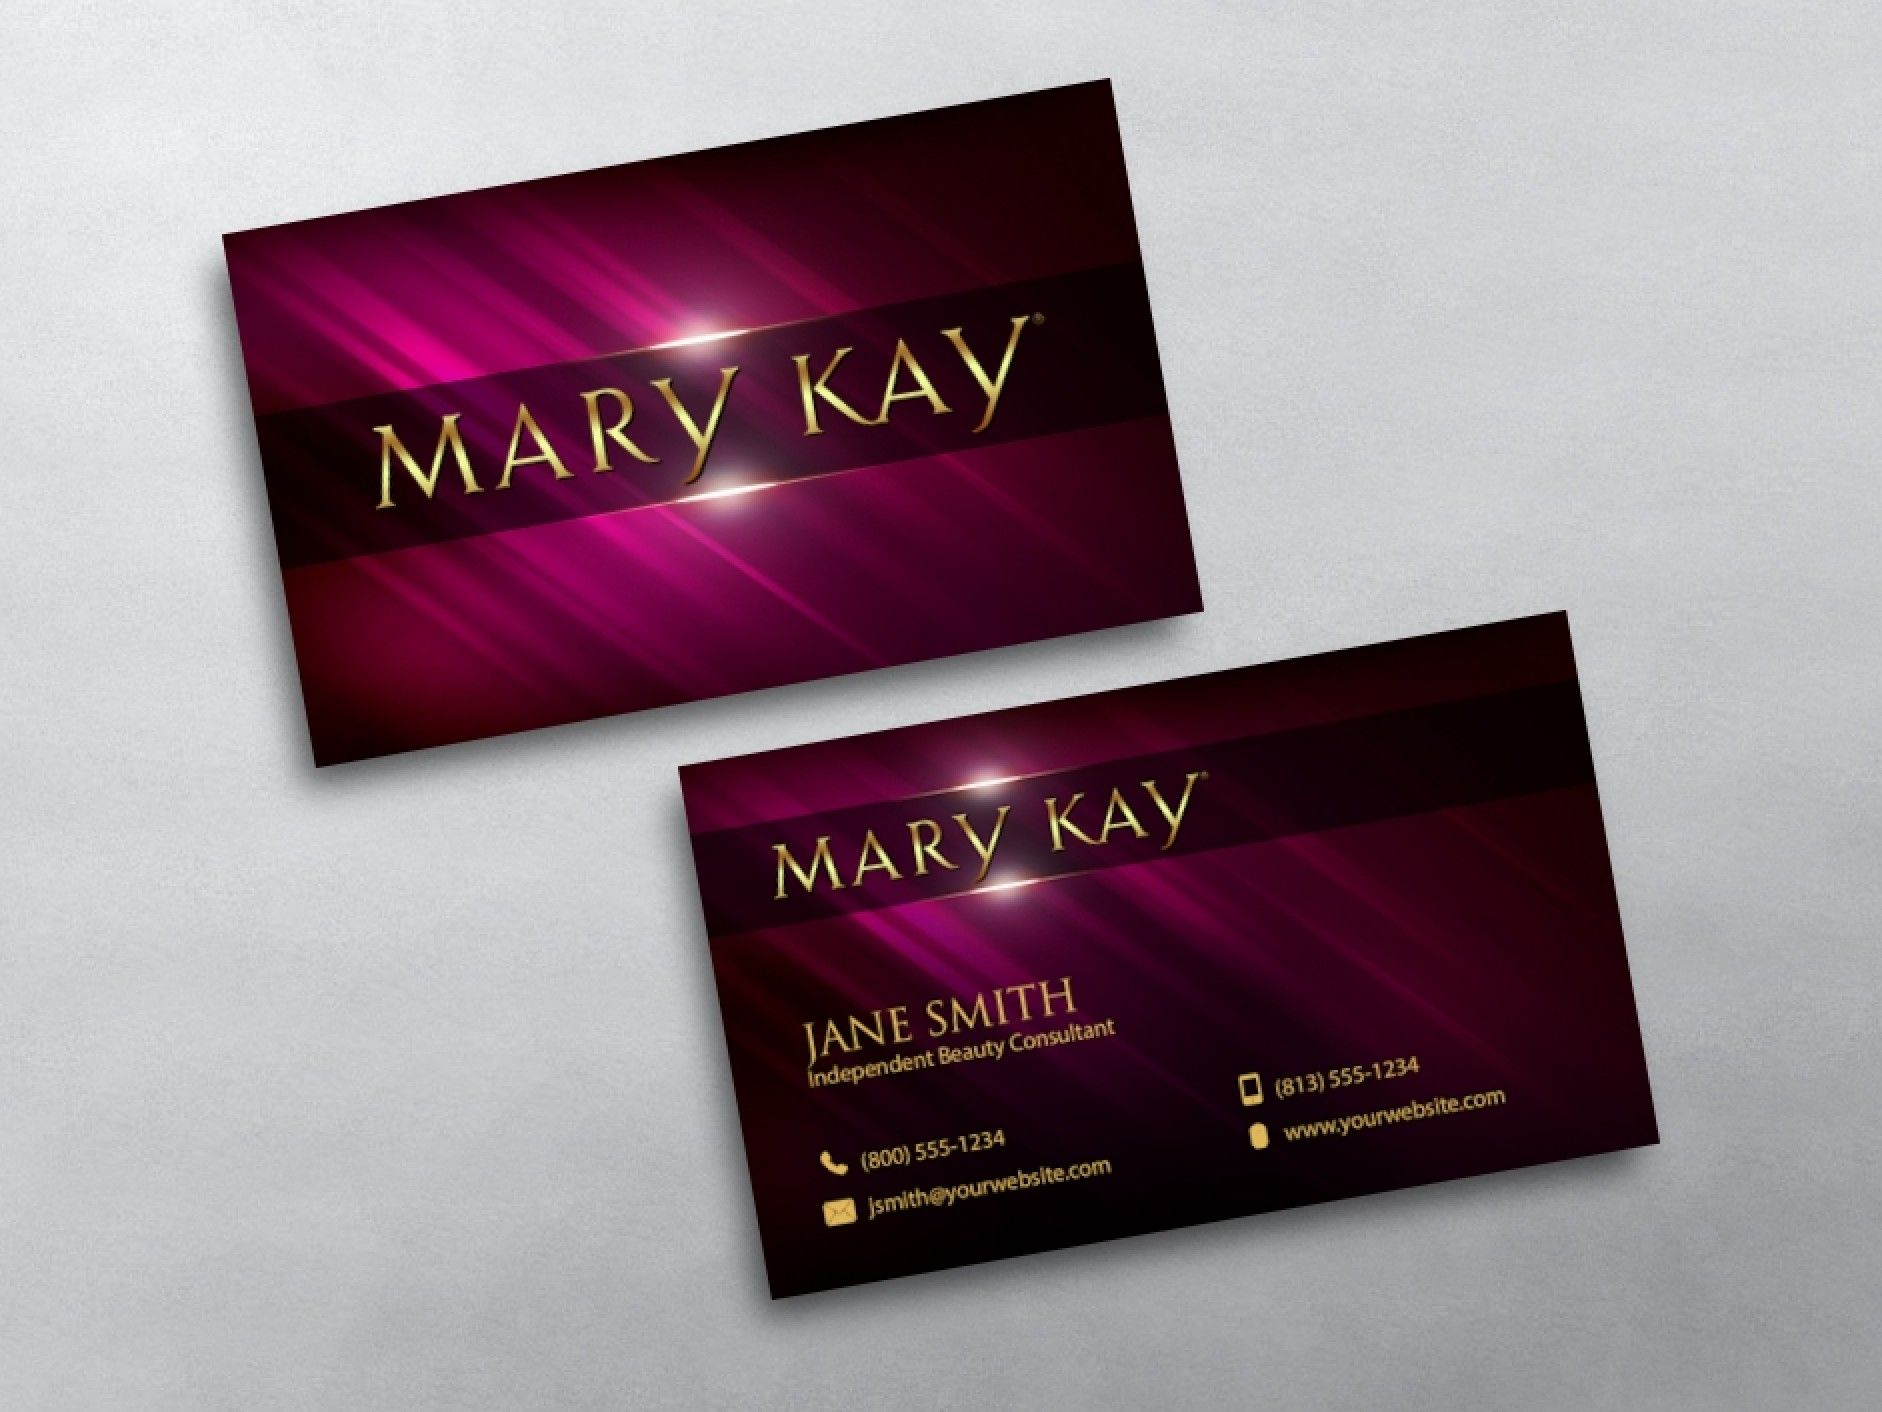 Mary Kay Business Cards in 2020 Free business cards